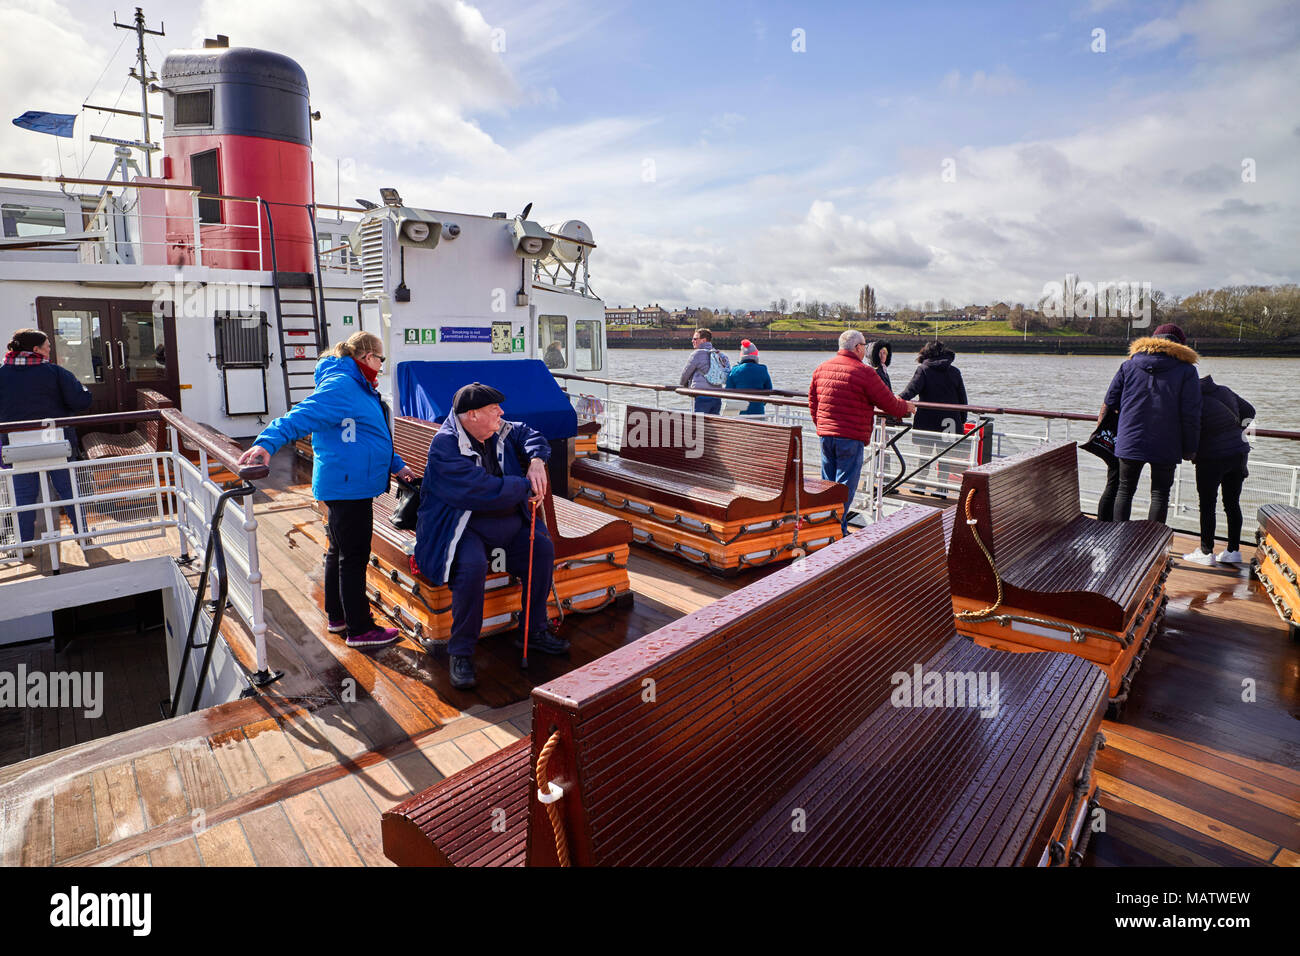 Passengers on the outside deck of the Royal Iris ferry crossing the river Mersey - Stock Image